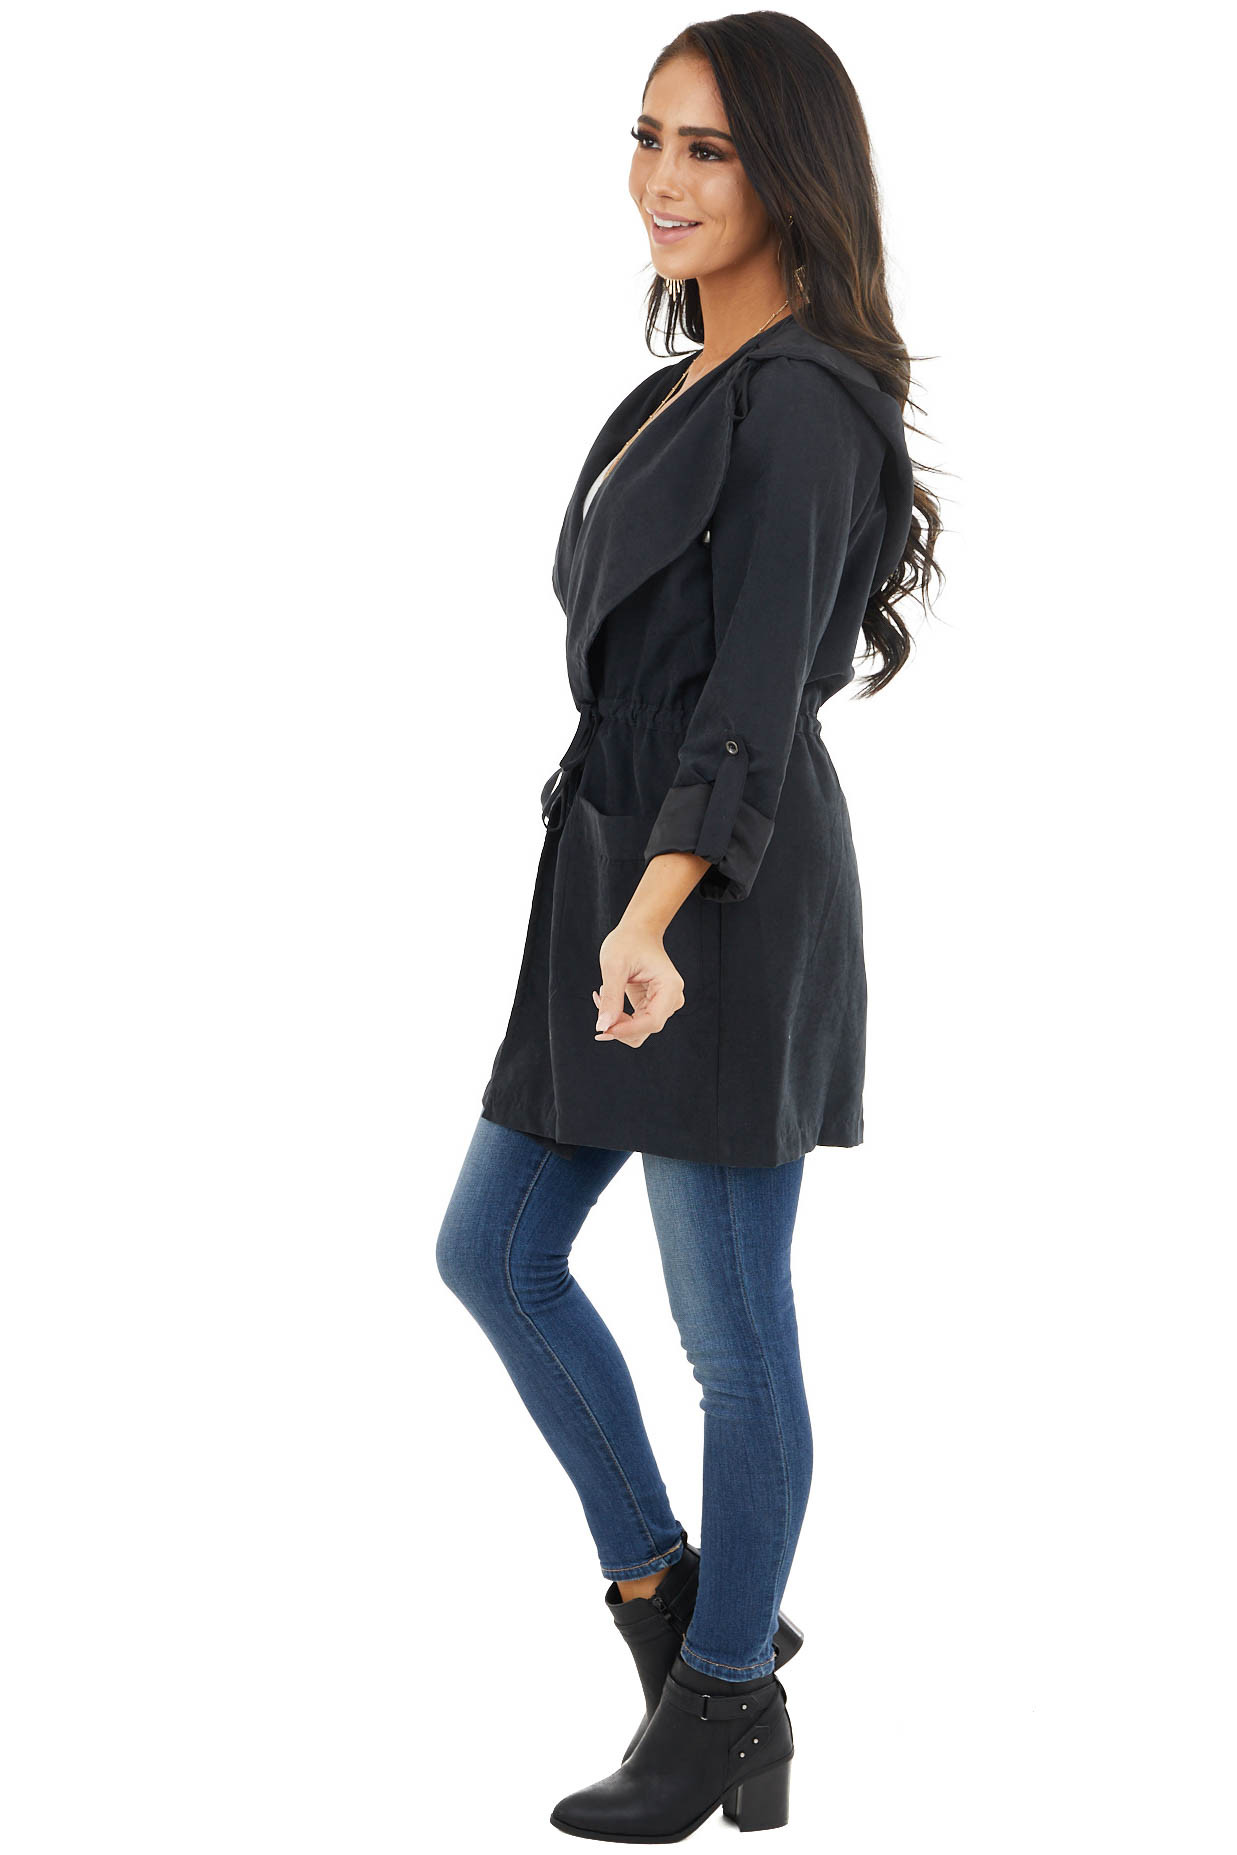 Black Hooded Faux Suede Long Jacket with Pockets